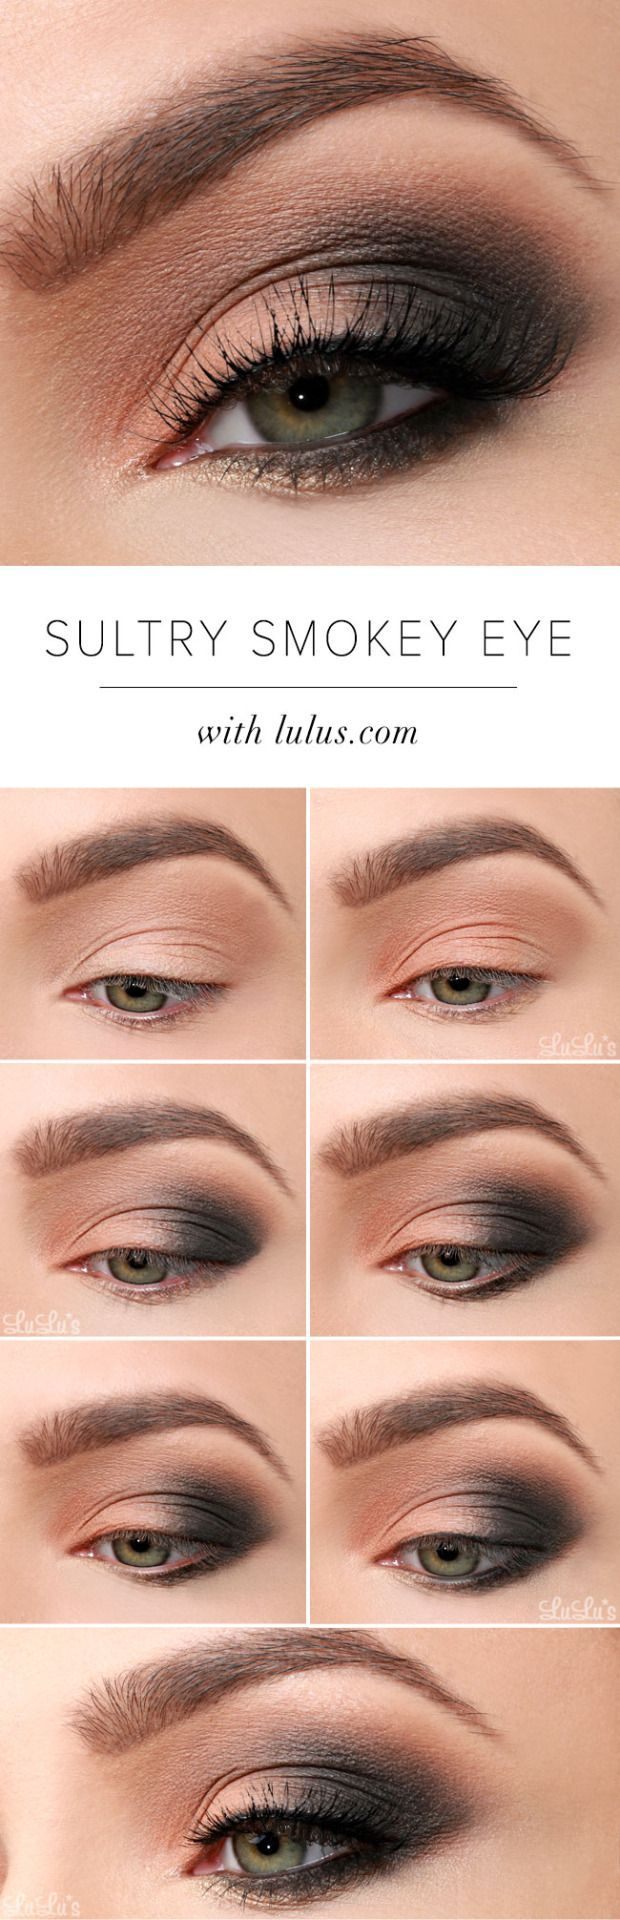 LuLu*s How-To: Sultry Smokey Eye Makeup Tutorial